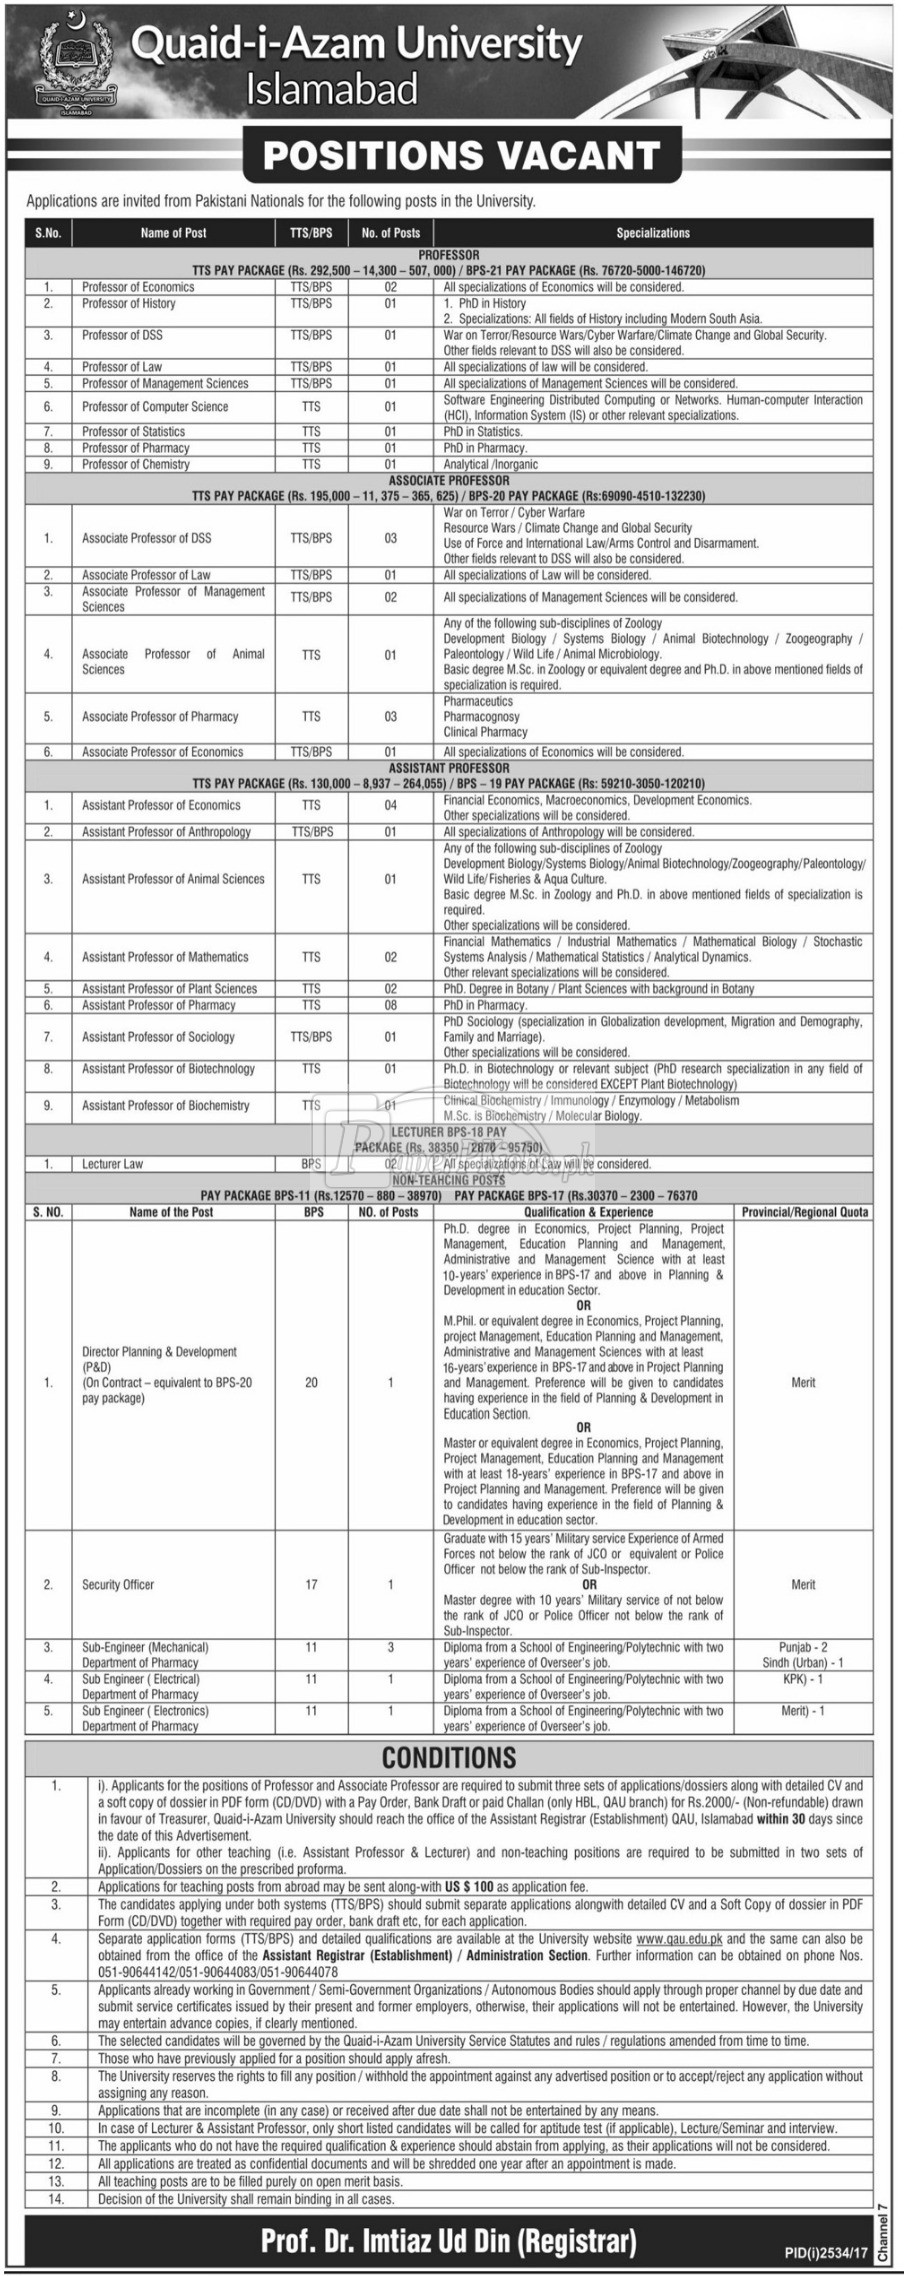 Quad-i-Azam University QAU Islamabad Jobs 2017